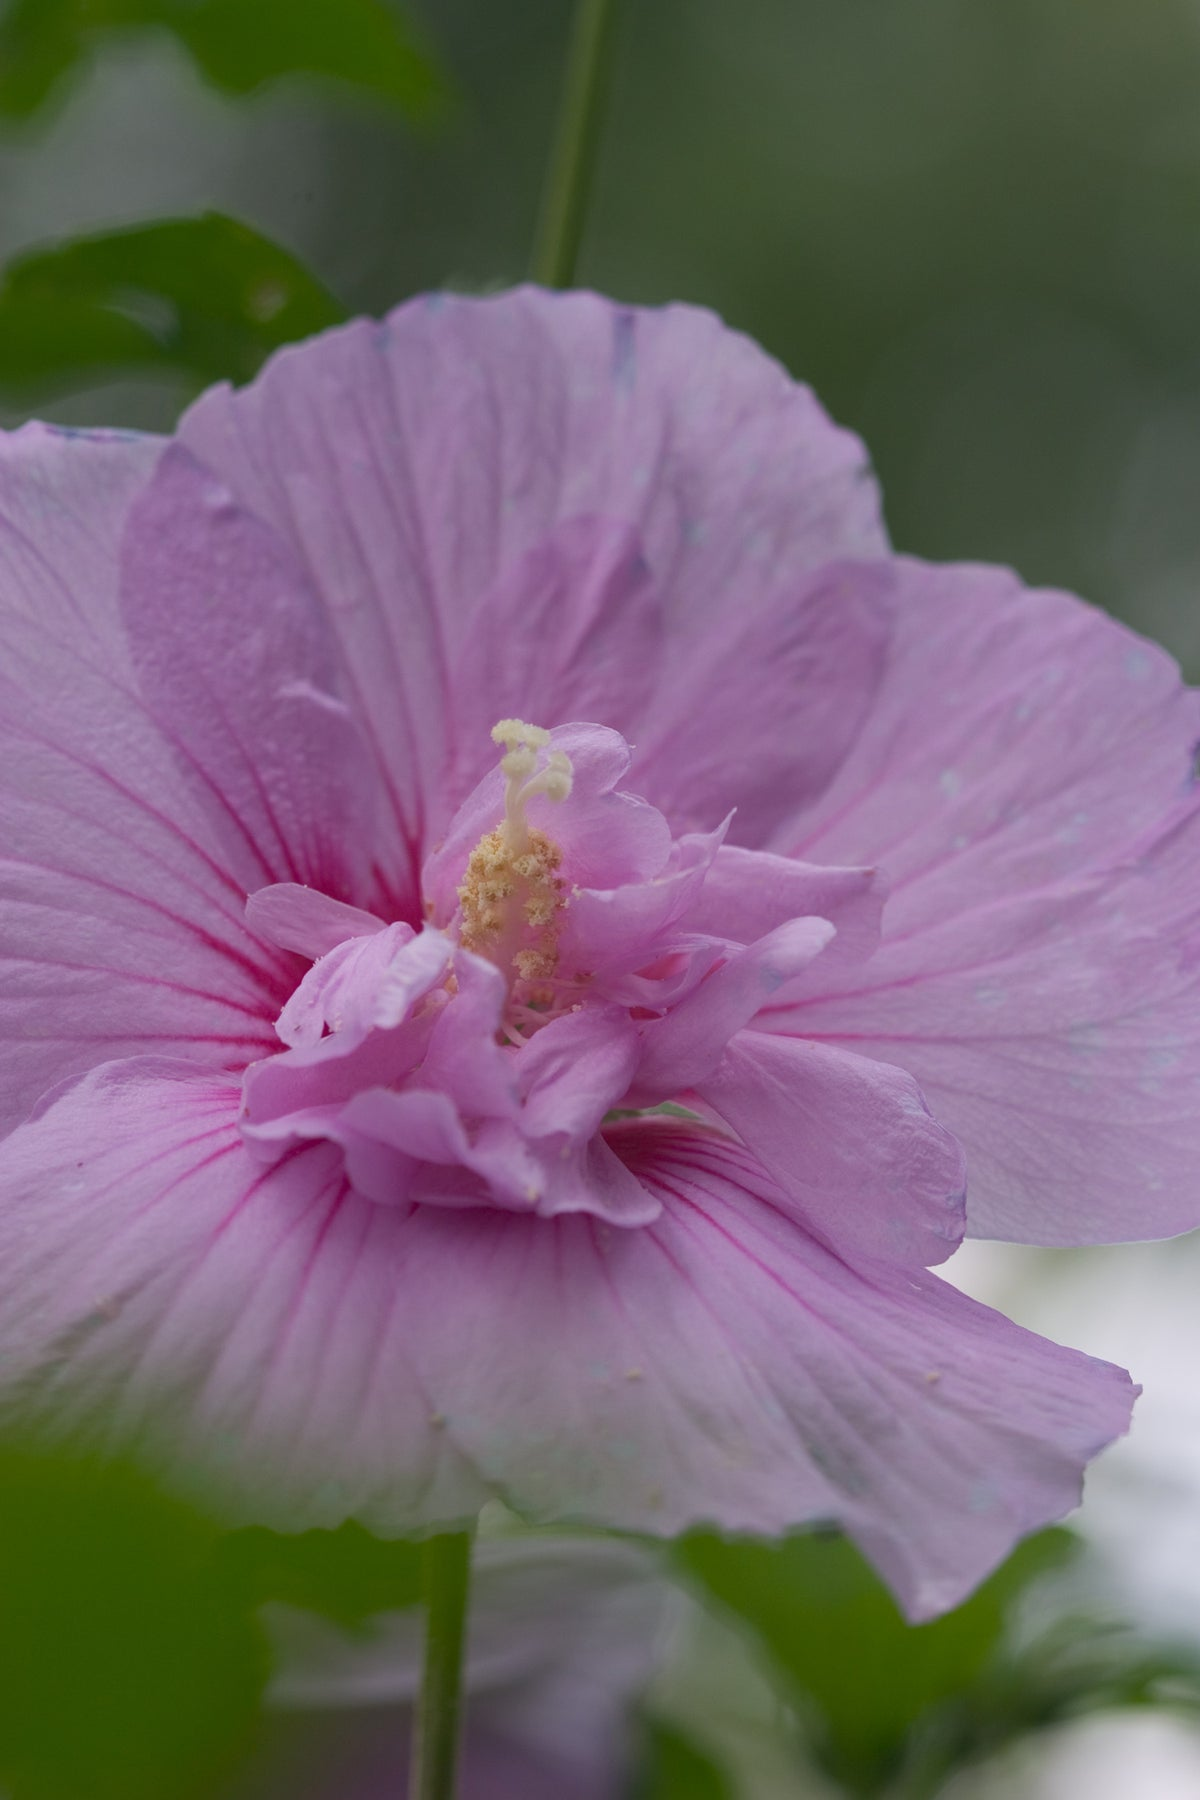 Proven Winners® Shrub Plants|Hibiscus - Lavender Chiffon Rose of Sharon 1